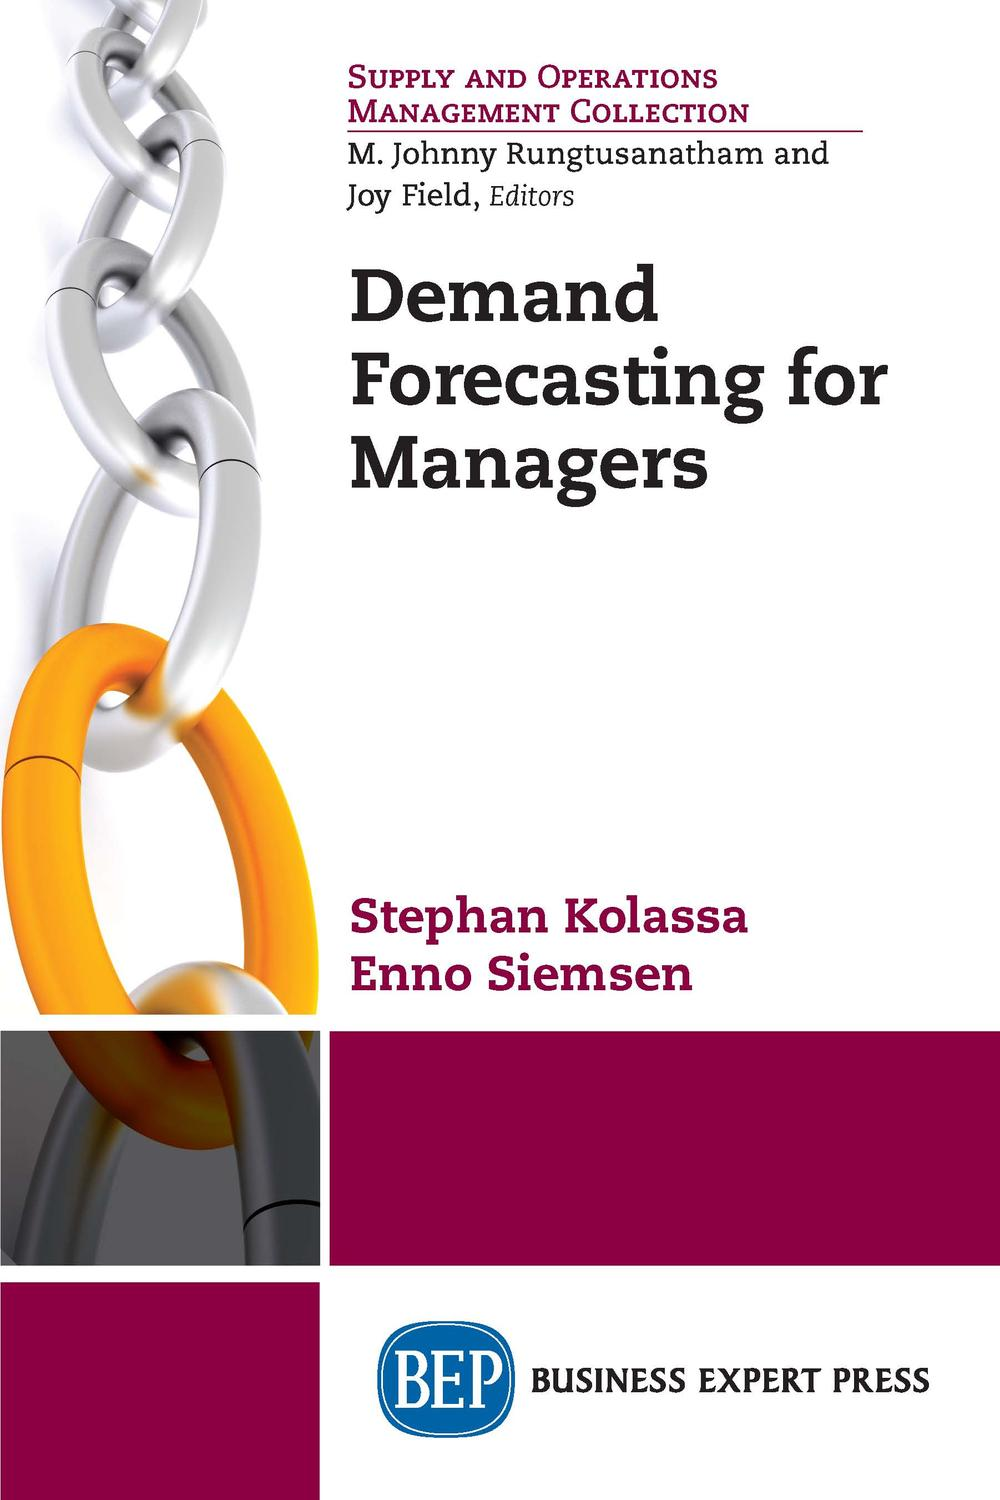 Demand Forecasting for Managers by Stephan Kolassa, Enno Siemsen